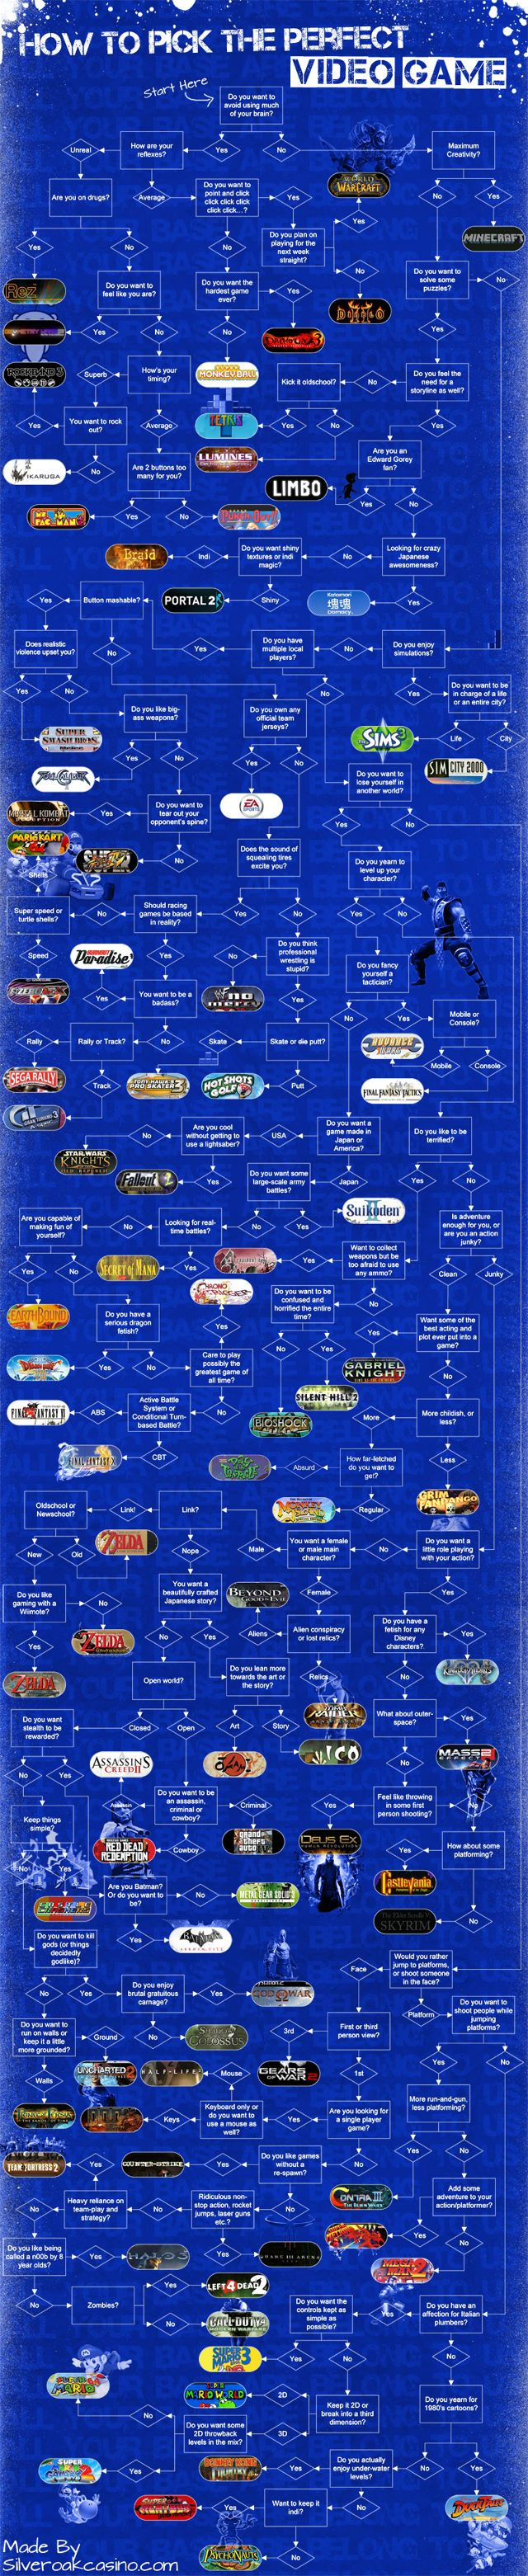 How To Pick The Perfect Video Game To Play, A Flowchart